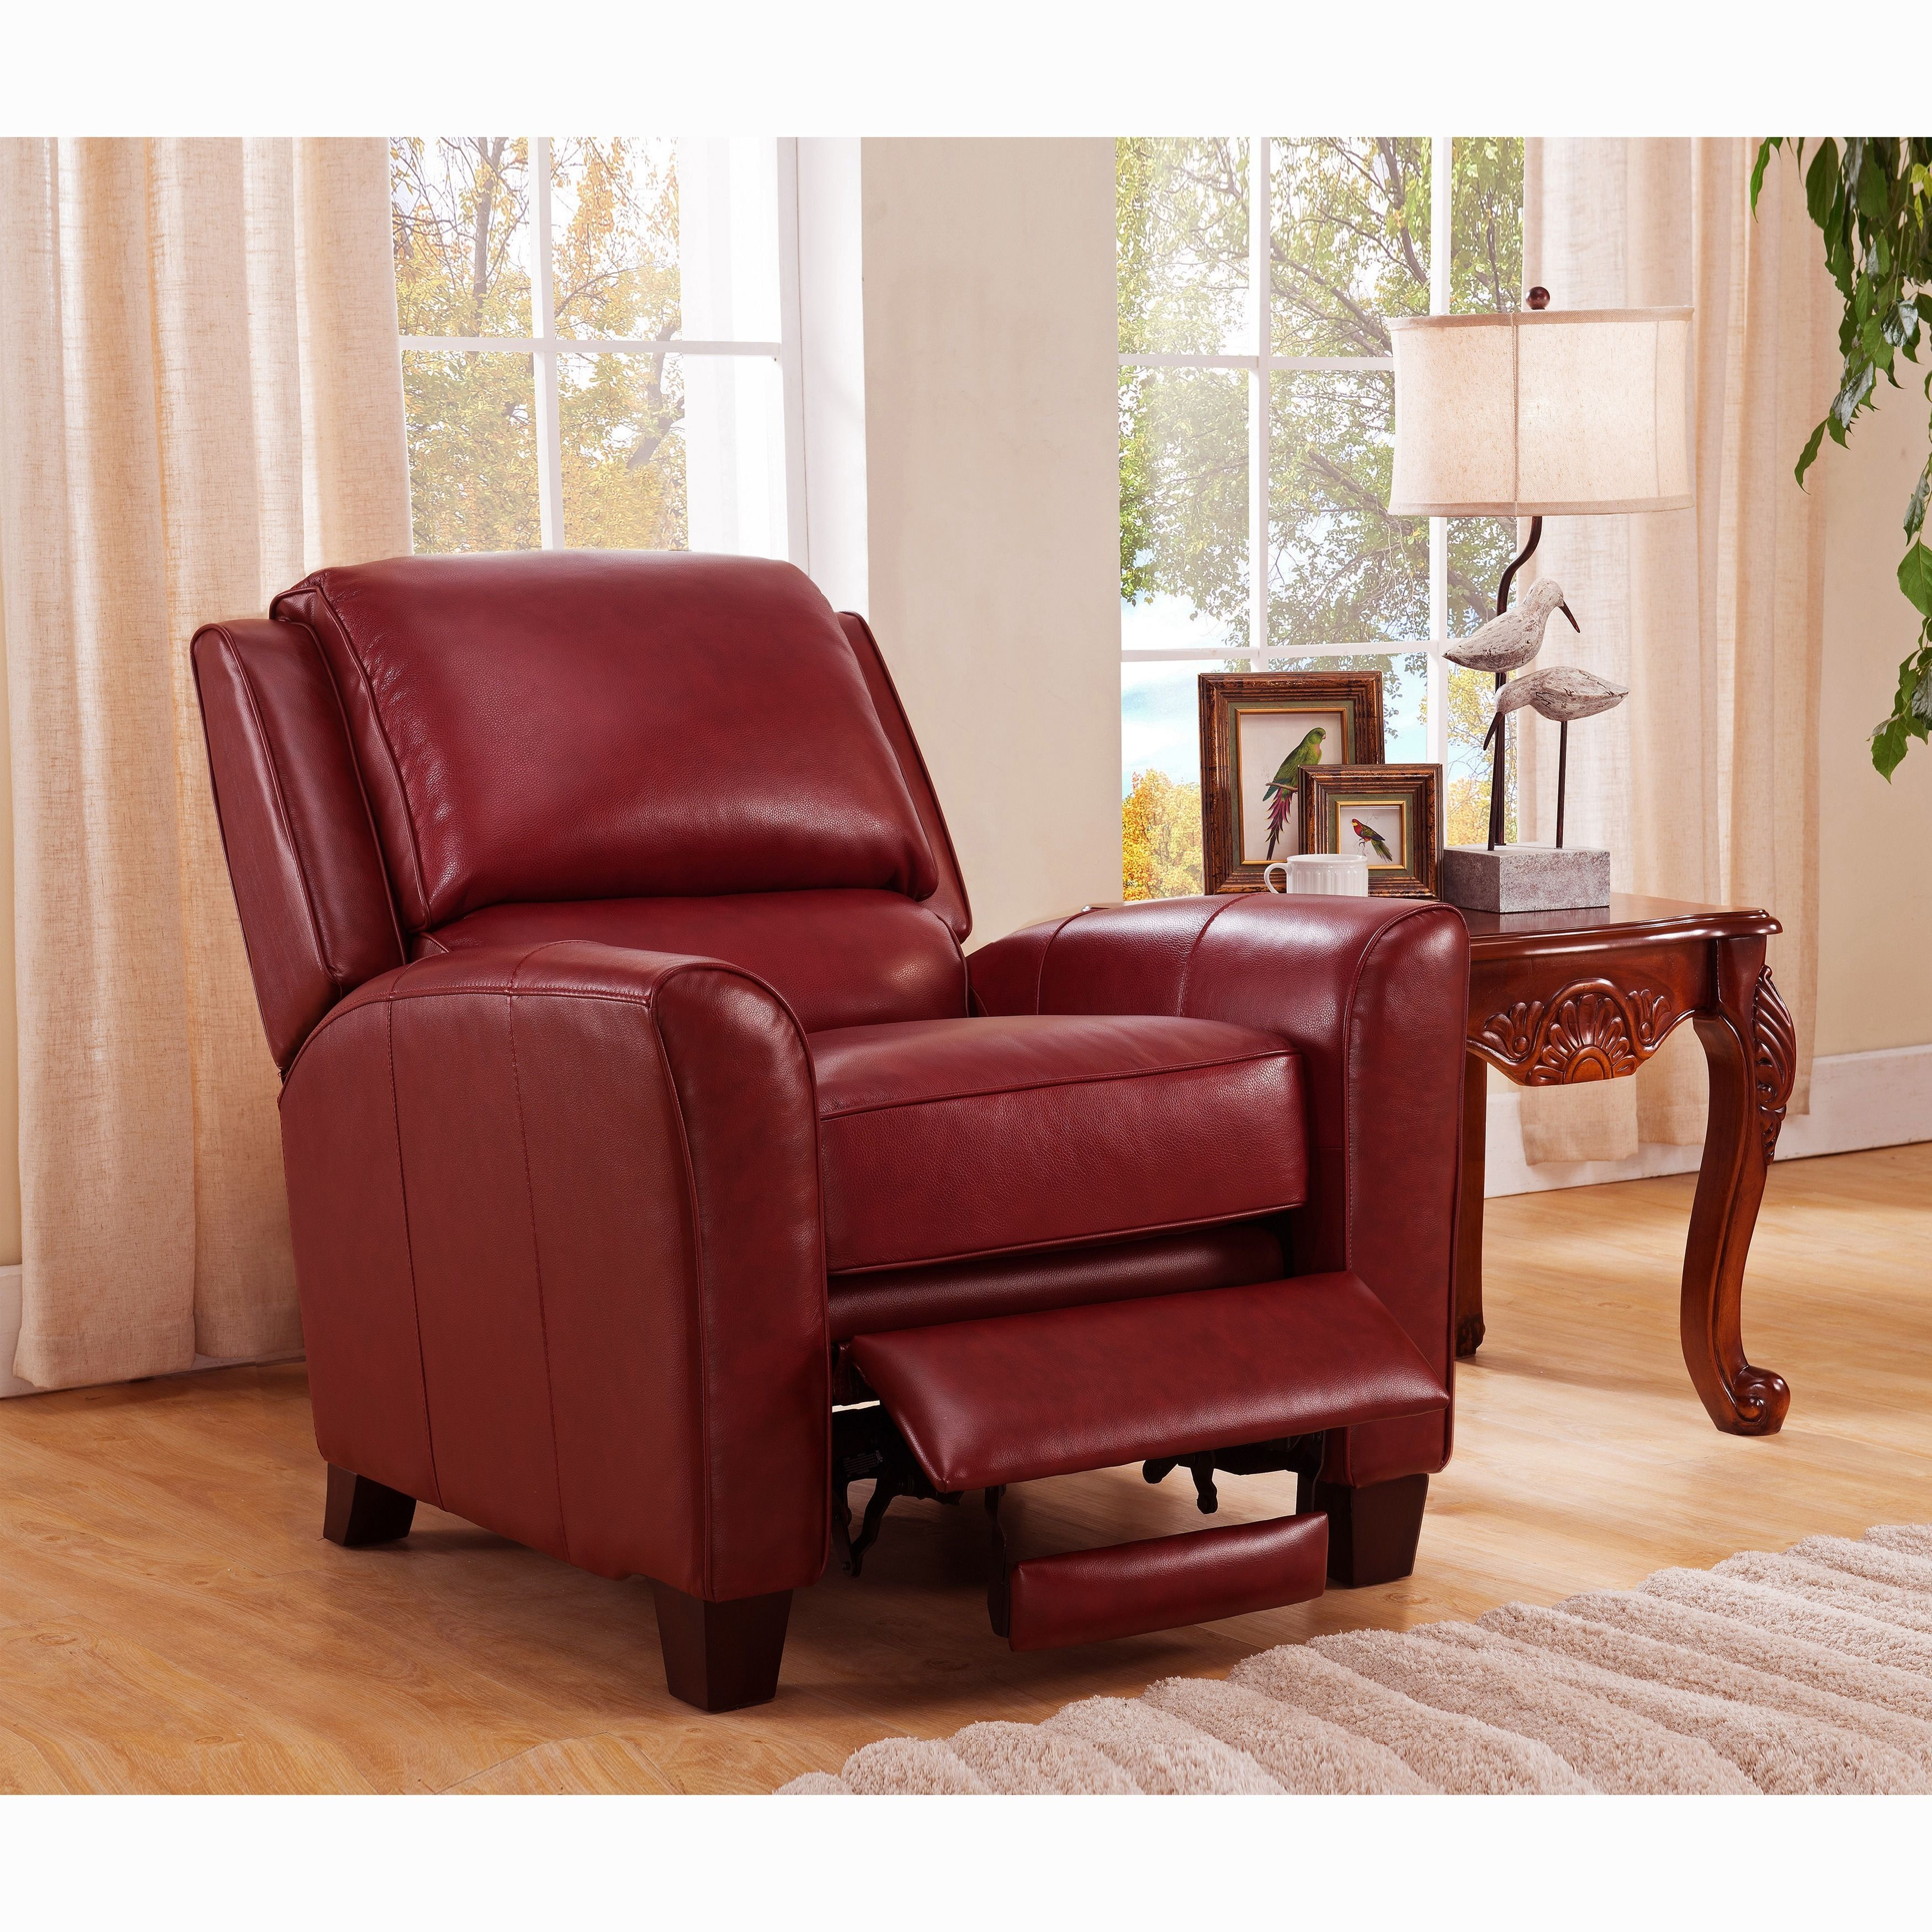 leather brown chair pu id buy in vf recliner f